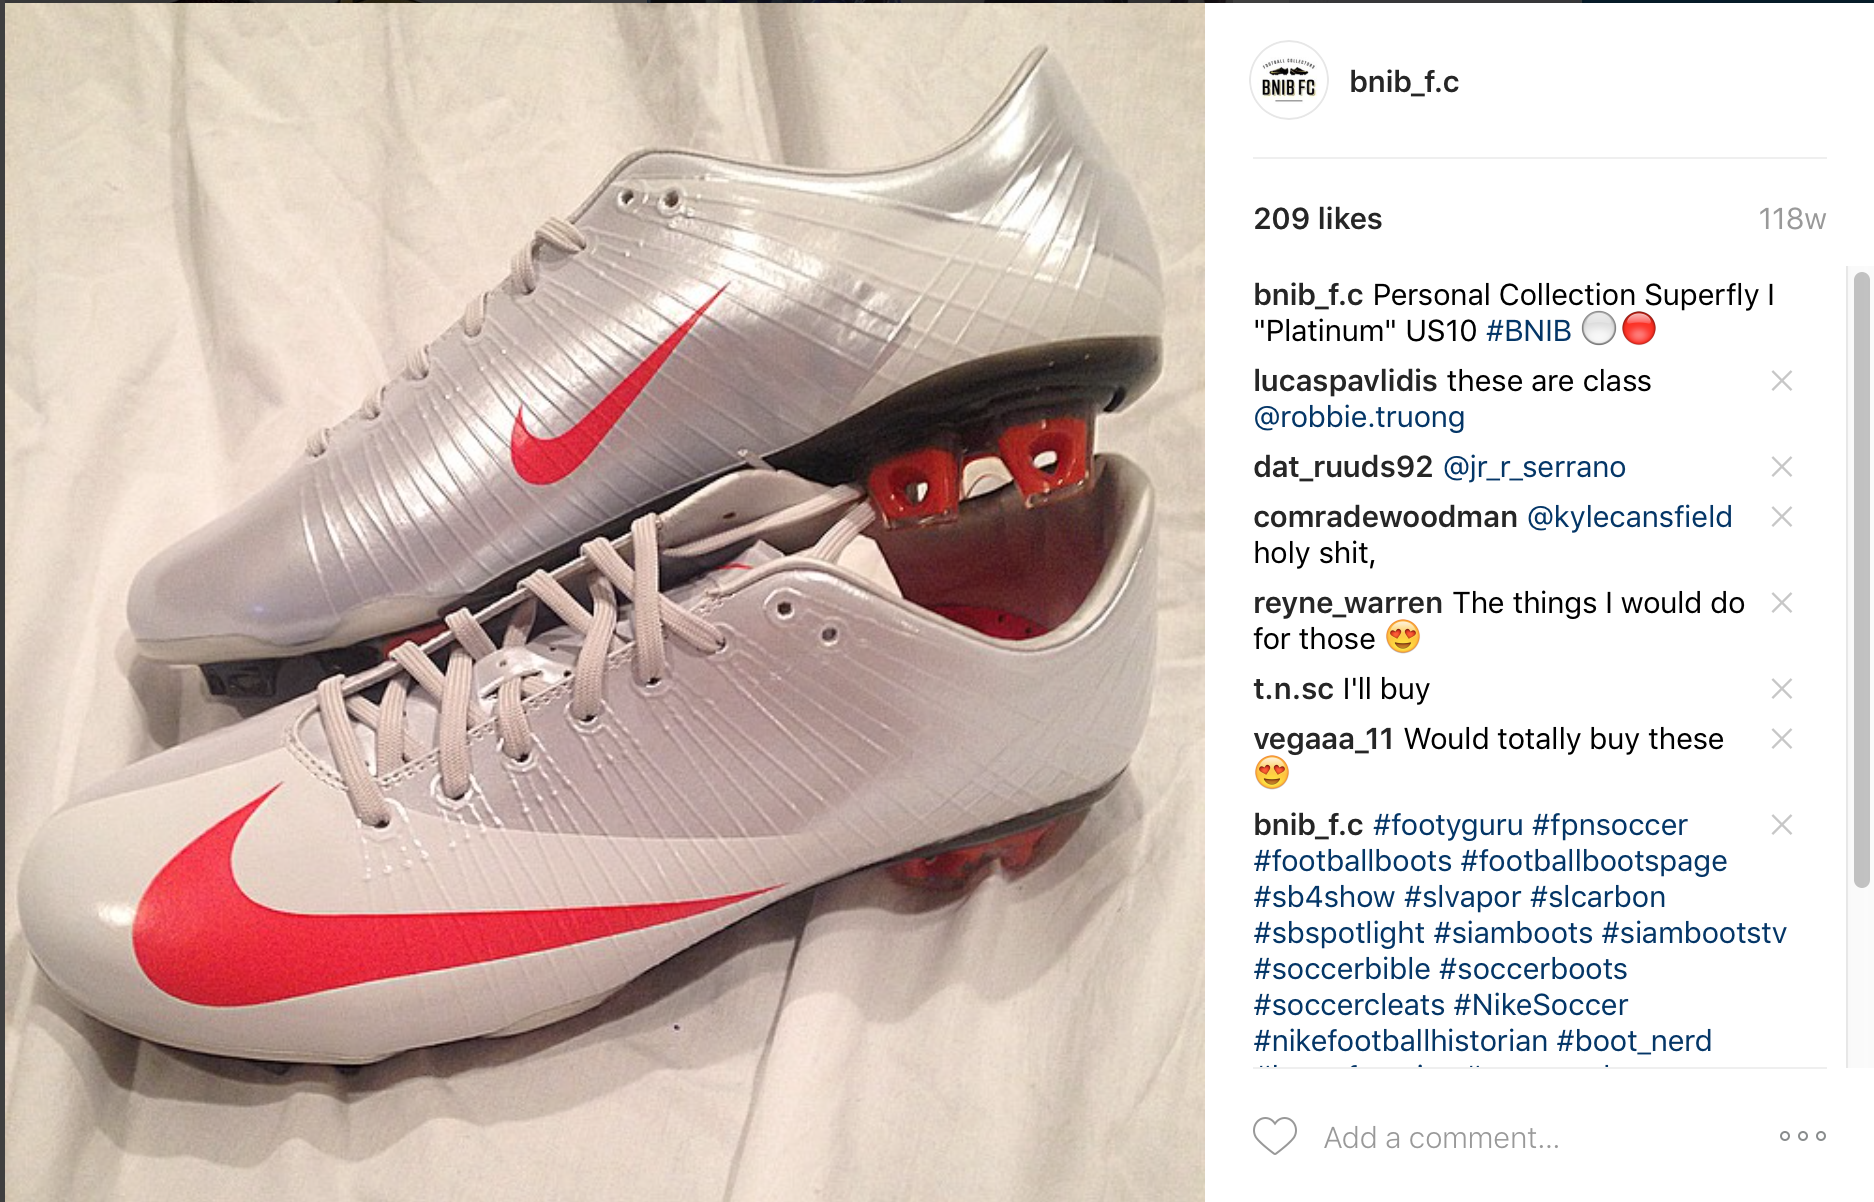 Nike Mercurial Superfly II Football Boots SoccerBible